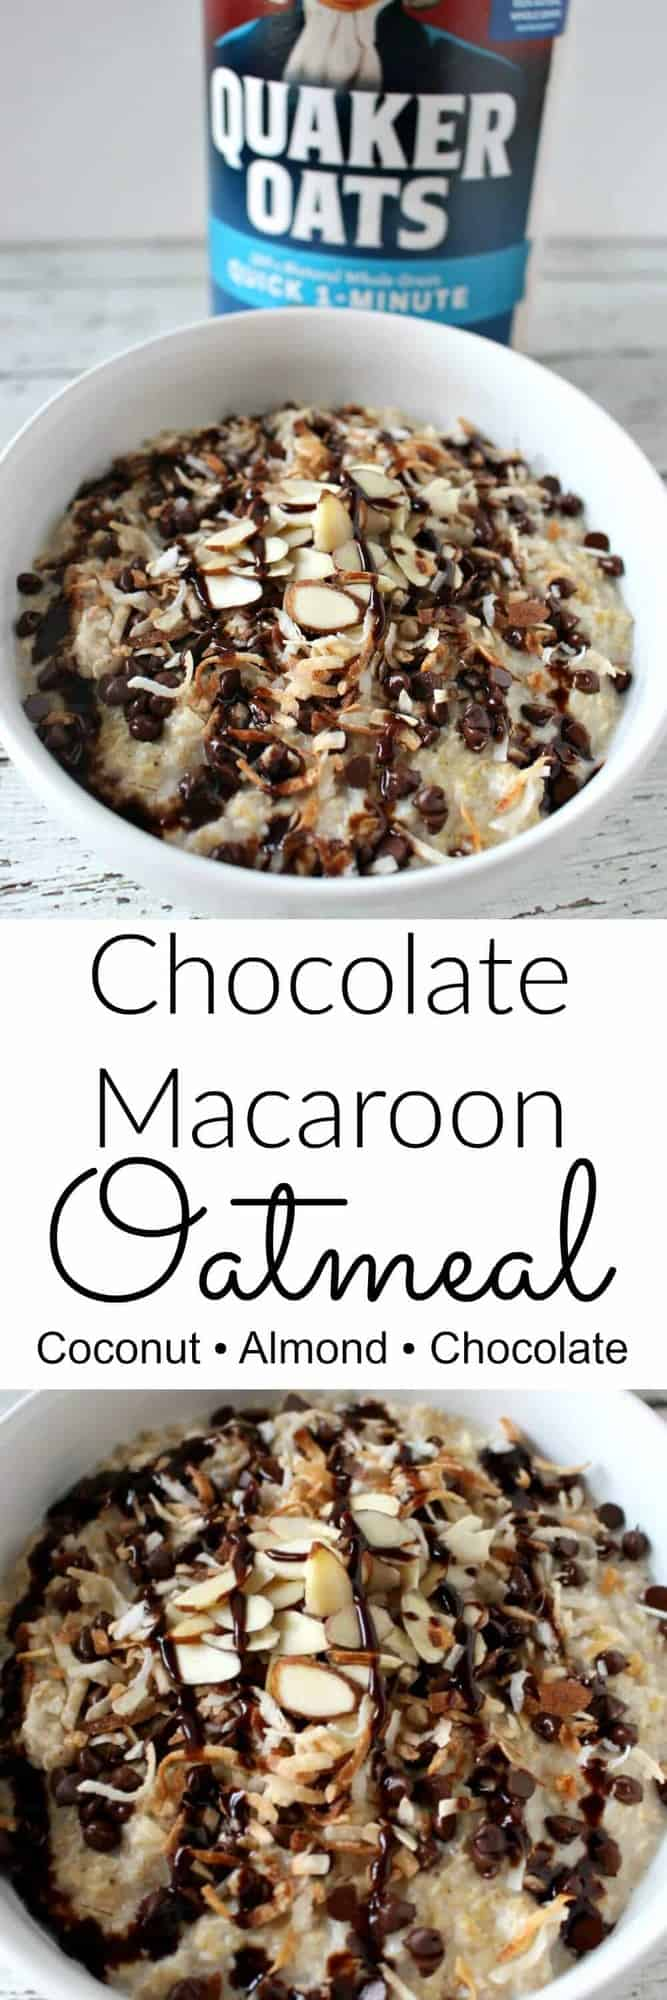 Chocolate Macaroon Oatmeal